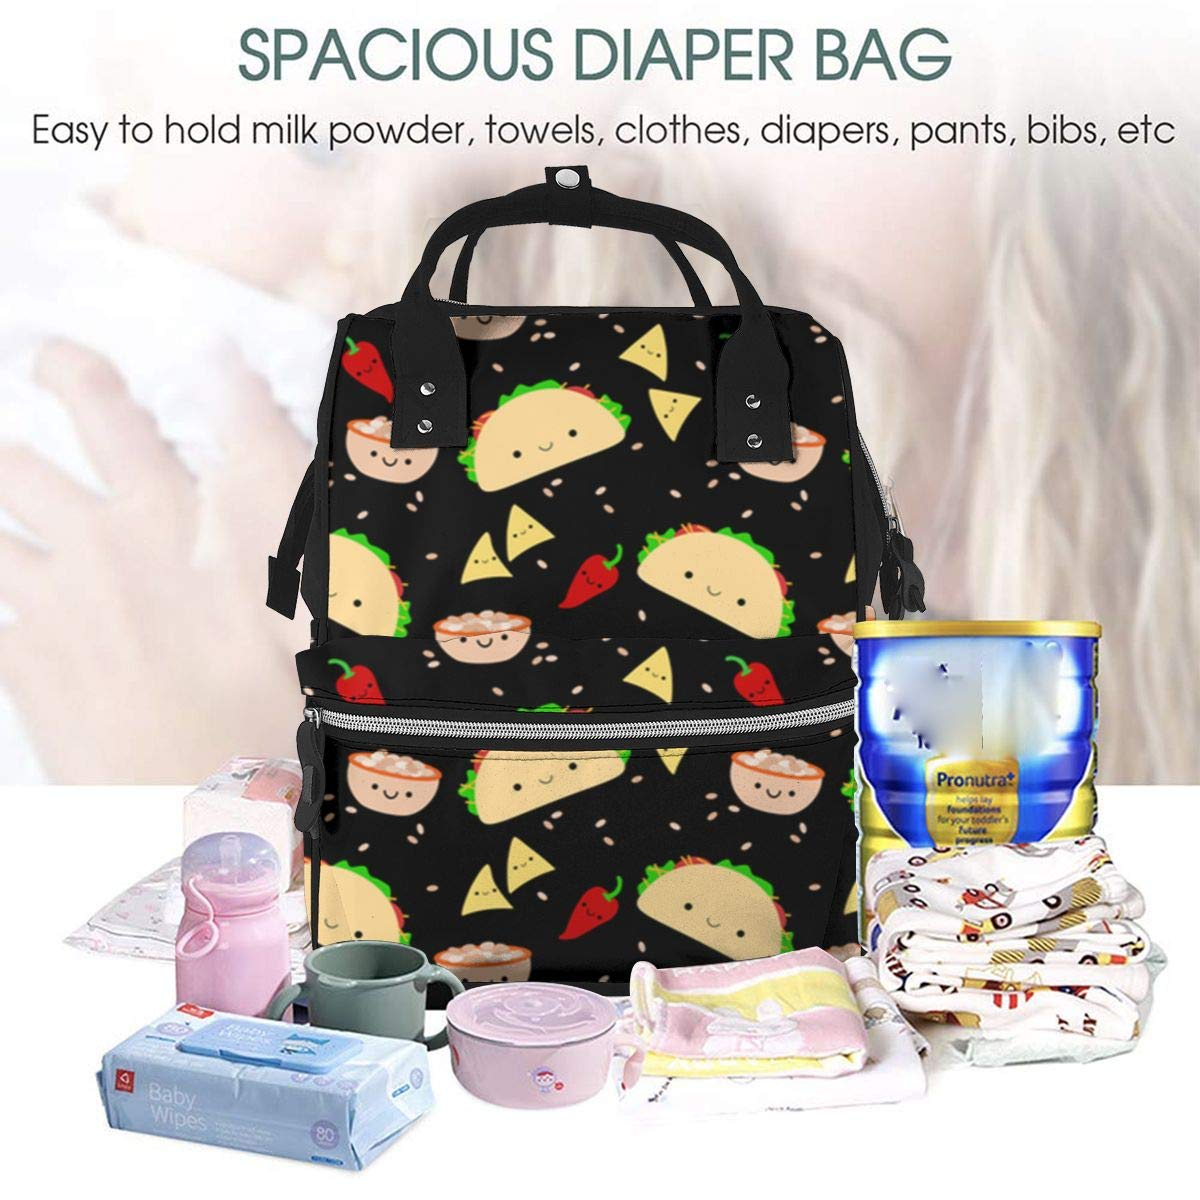 3274e6498d2e Amazon.com : Diaper Bag Backpack Taco Tuesday Party Multifunction ...